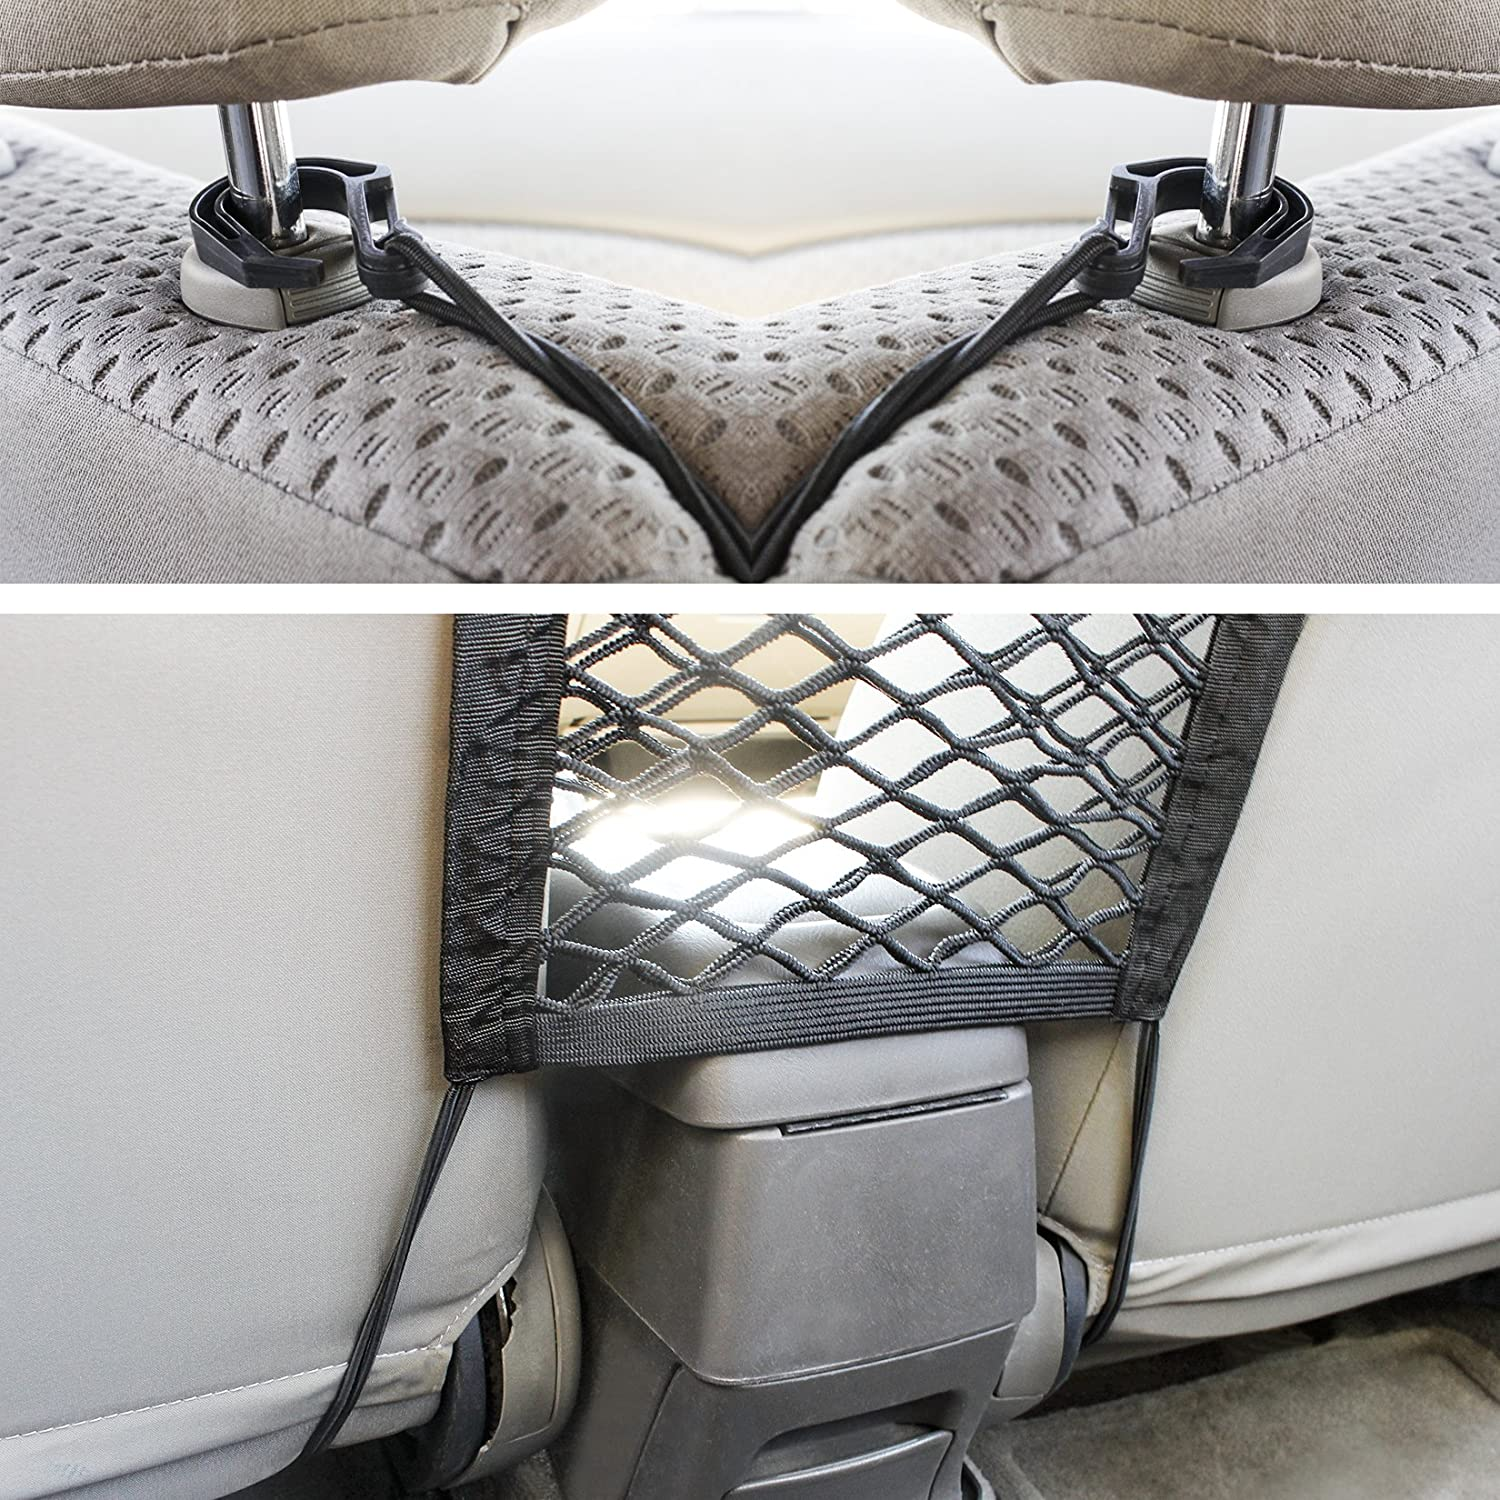 Barrier Net Disturb Stopper from Children and Pets Backseat Universal Stretchy Mesh Net Storage Juvale Car Seat Net Organizer 10.5 x 10.5 Inches 4350419585 Black Cargo Holder